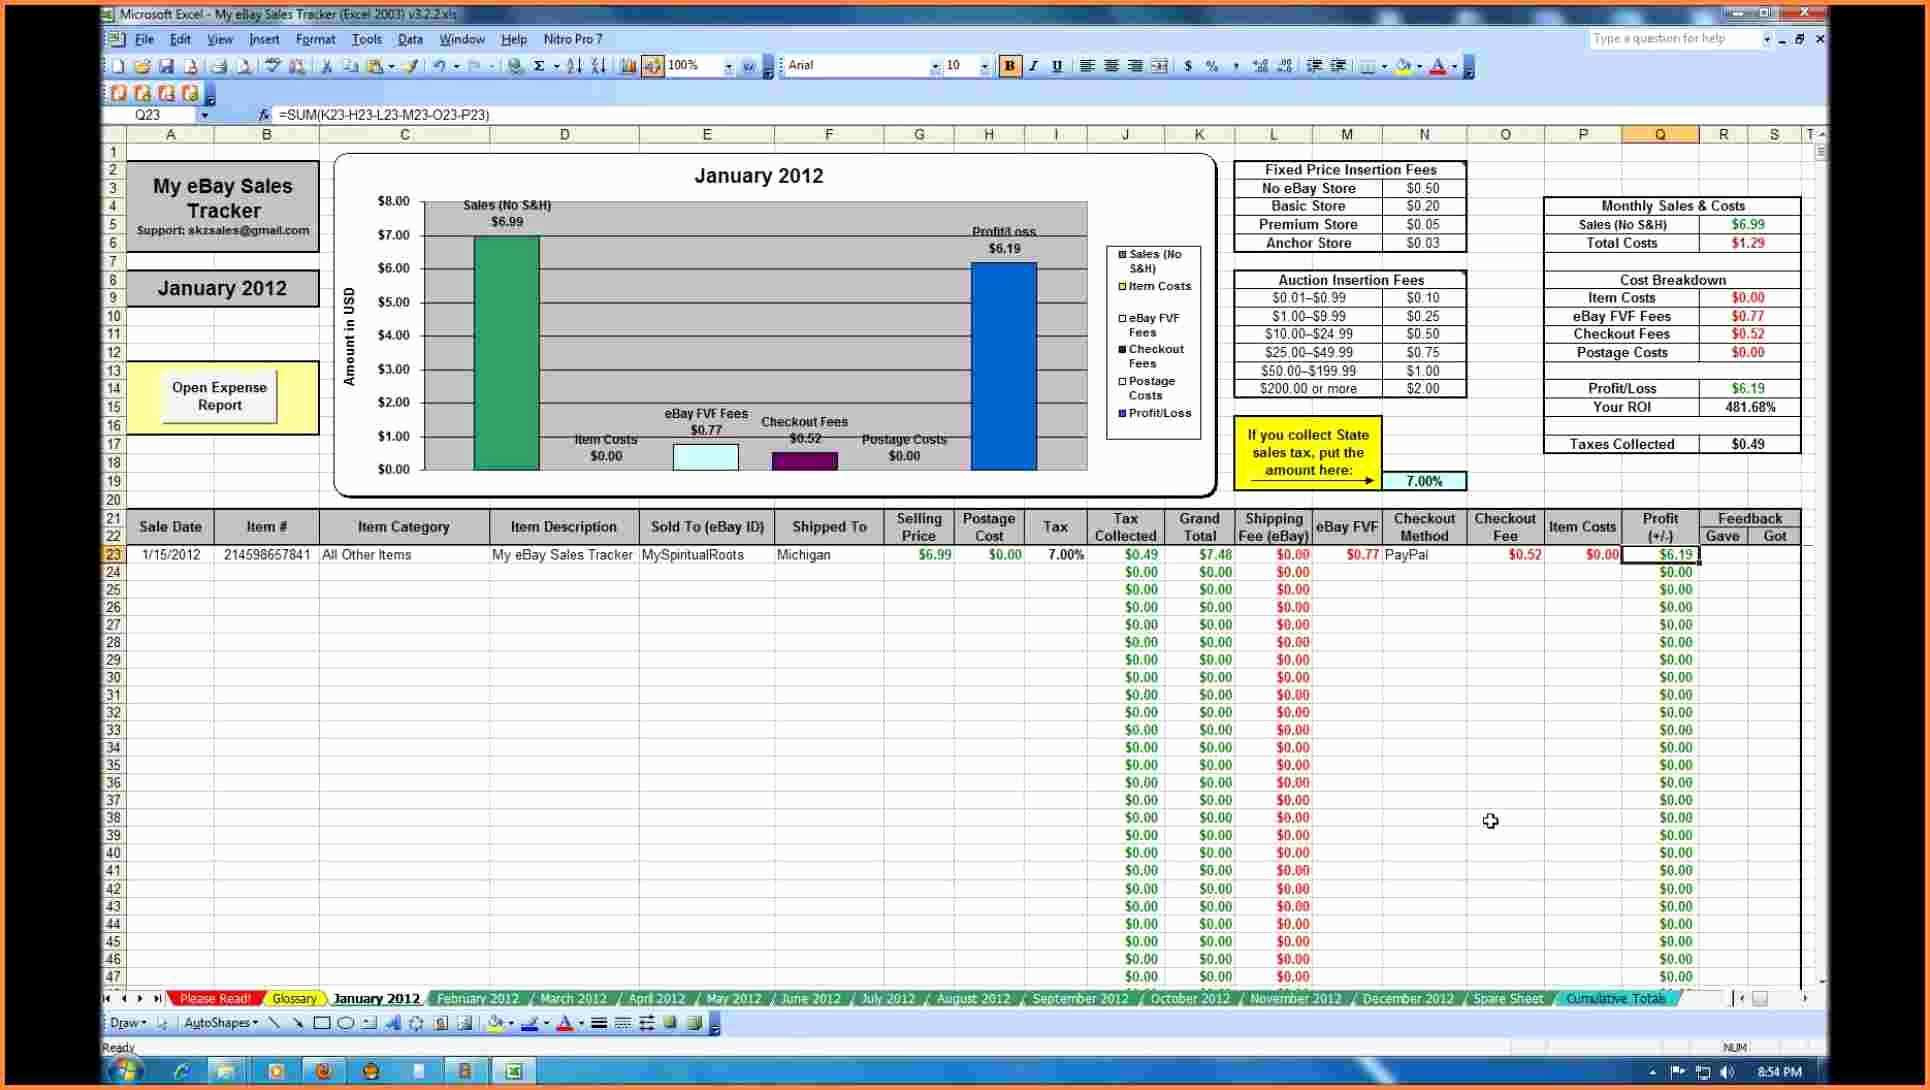 Vending Machine Tracking Spreadsheet Inside Inventory Tracking Excel Template Beautiful 10 Beautiful Vending